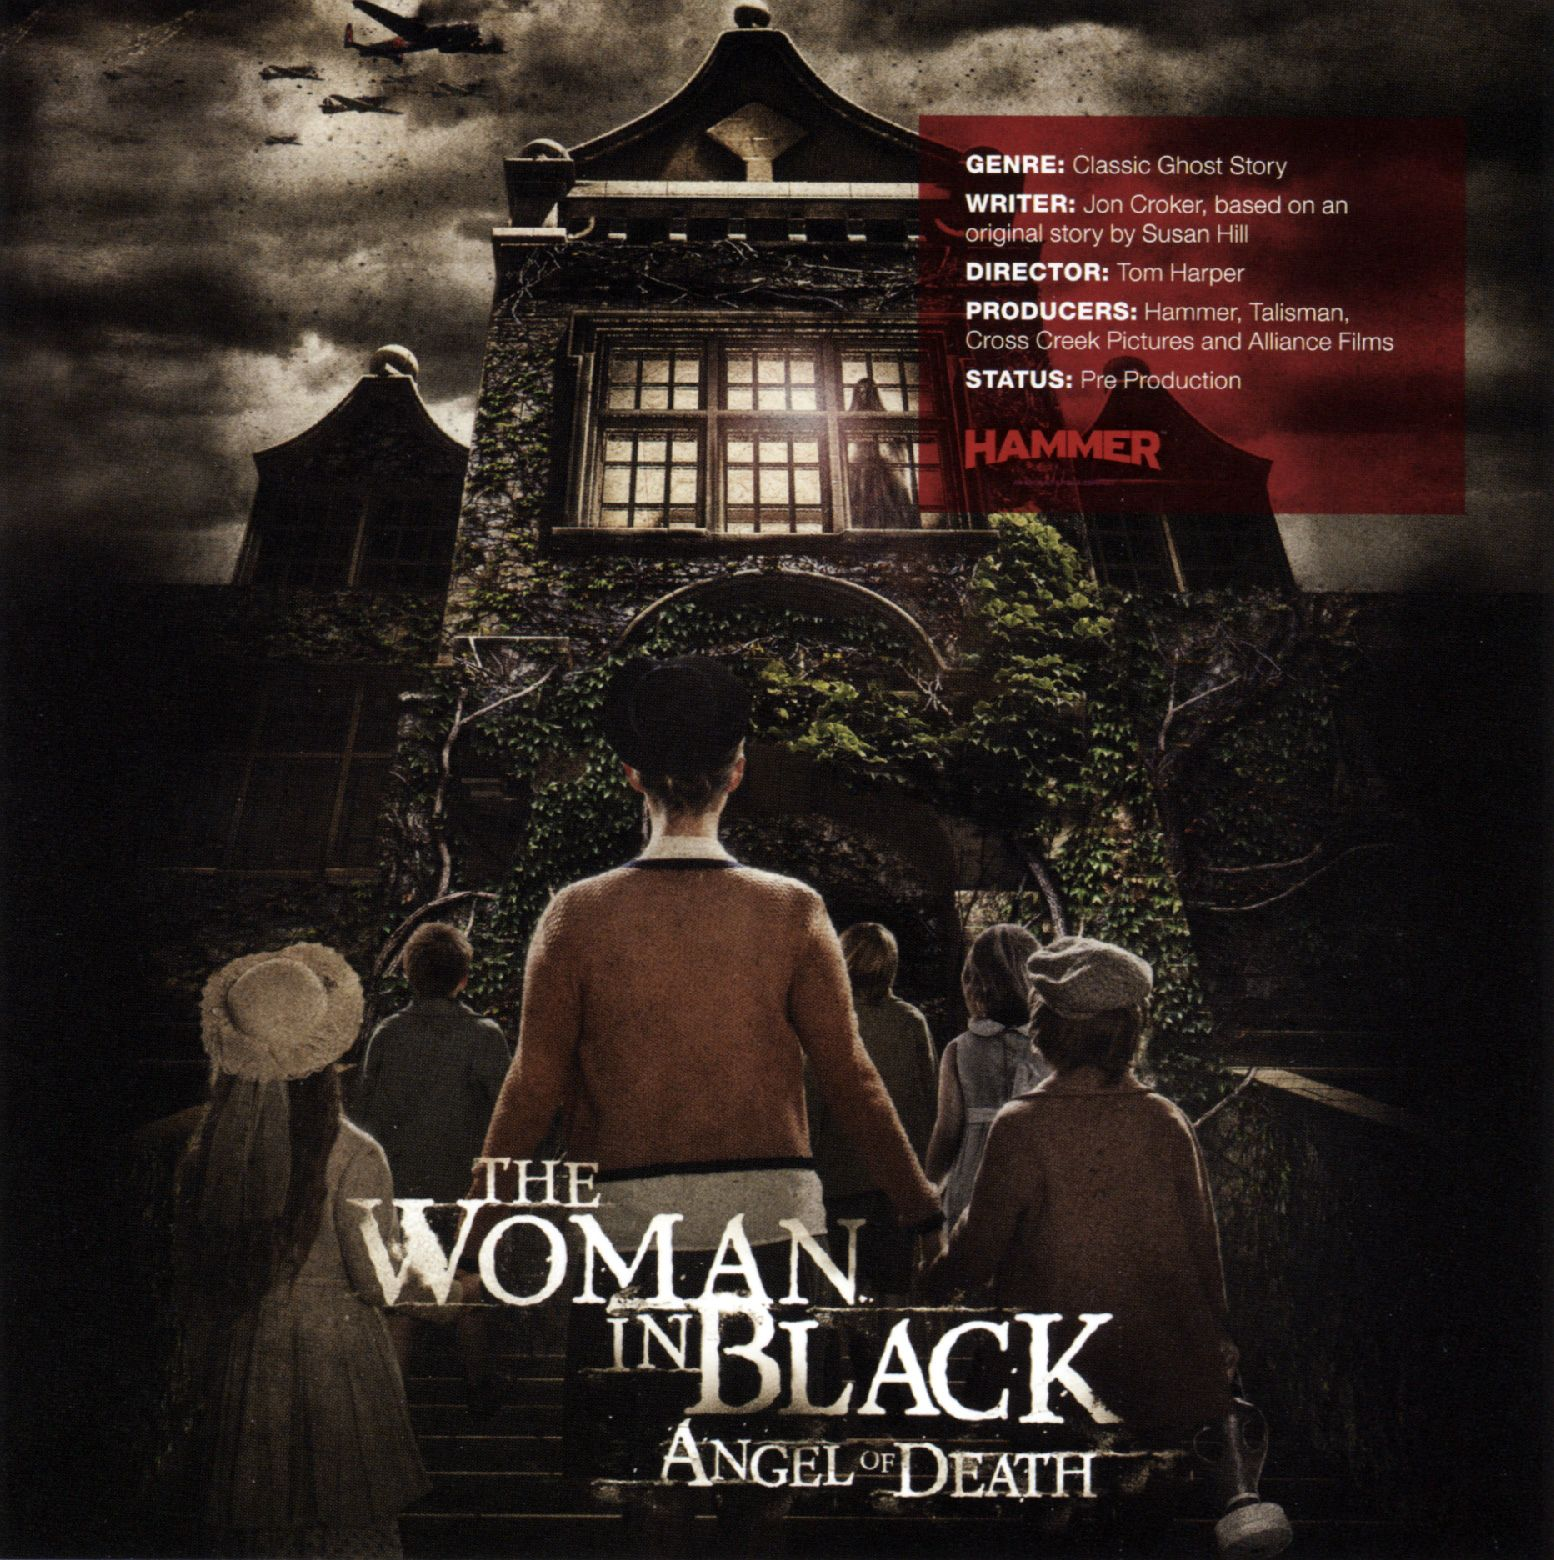 the woman in black: angel of death promo poster | collider